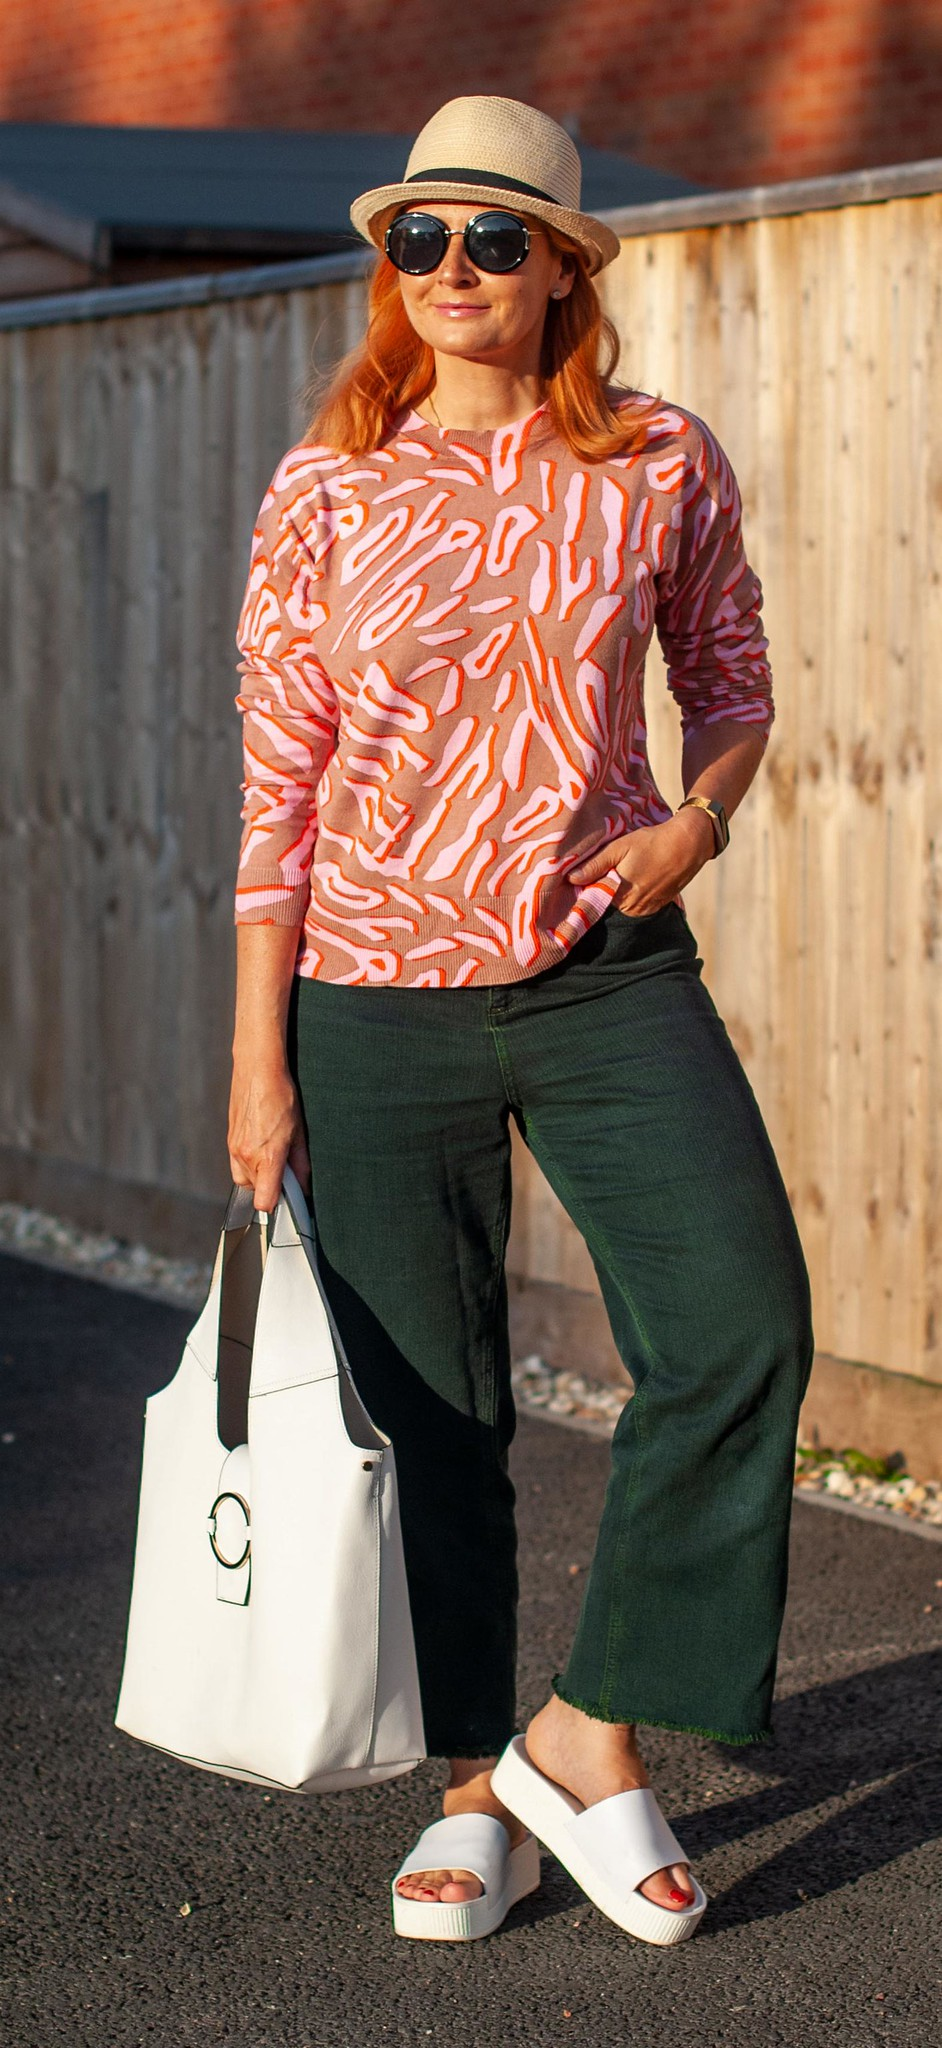 Over 40 Fashion: Cooler Summer Weather Outfit of Pink and Green \ pink and camel leopard print sweater \ wide cropped dark green jeans \ straw hat \ white flatform sandals \ white hobo bag | Not Dressed As Lamb